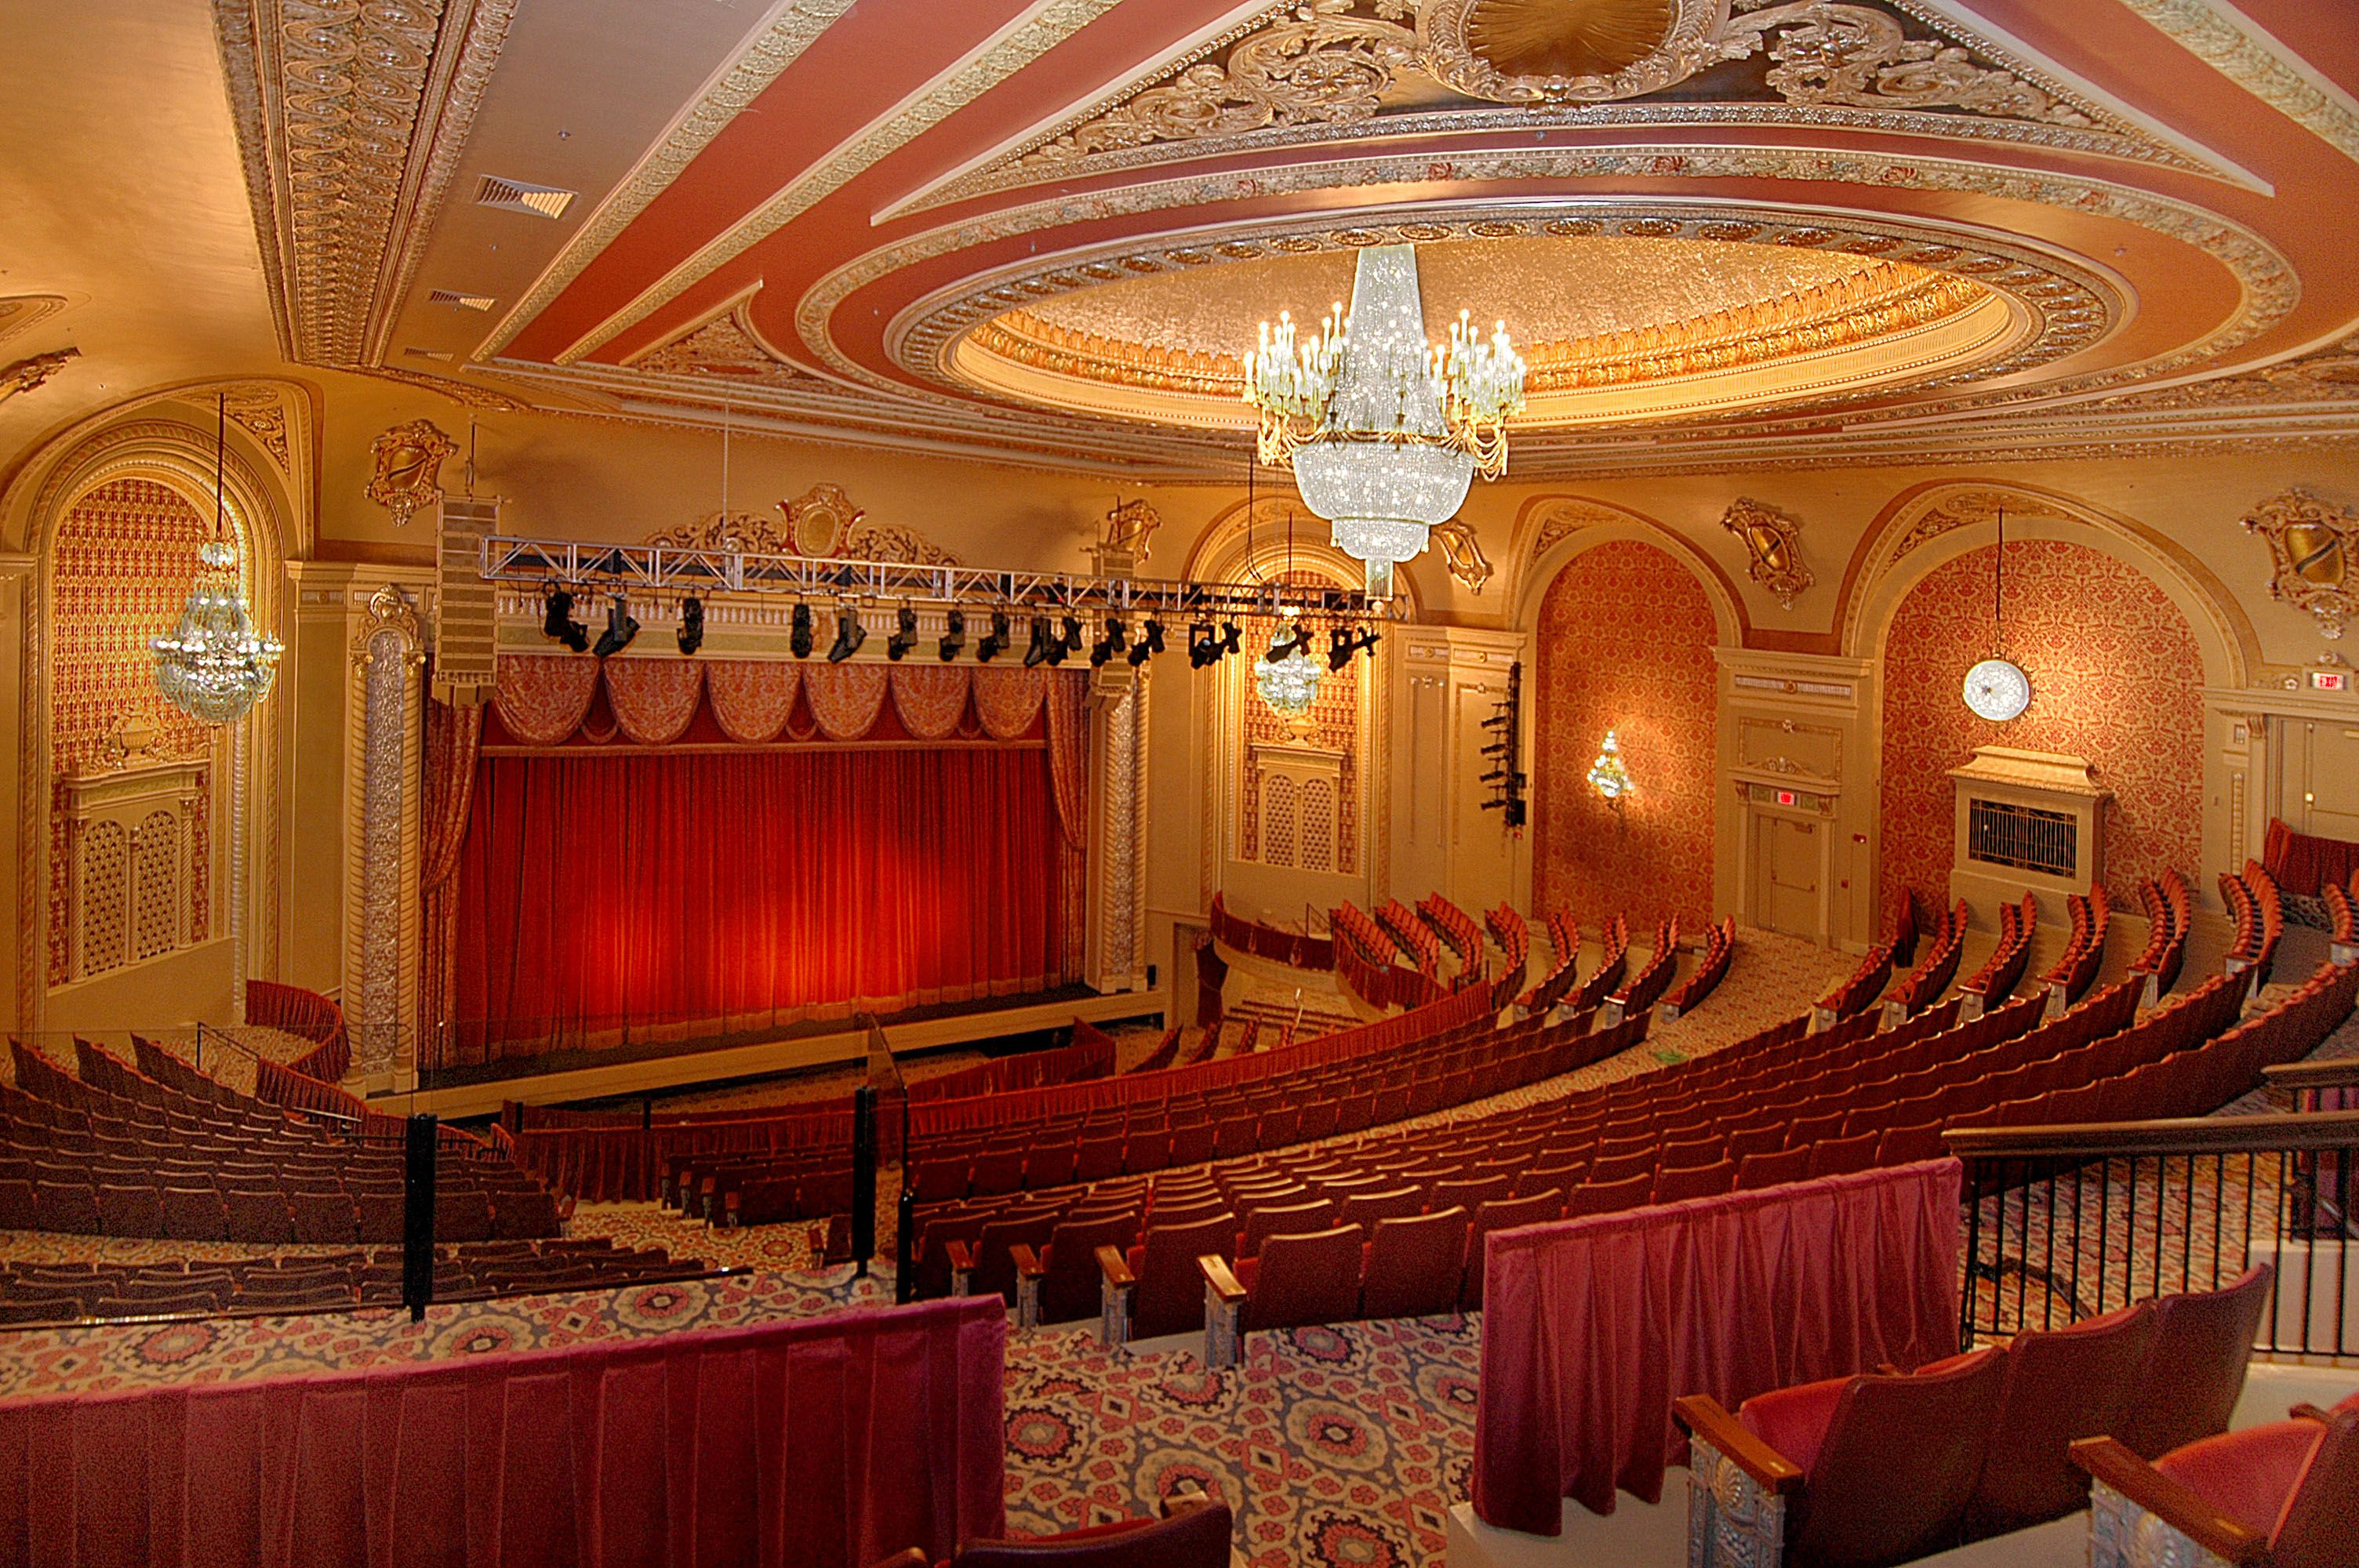 The Genesee Theatre Seats Over 2400 Guests You Would Be Surprised